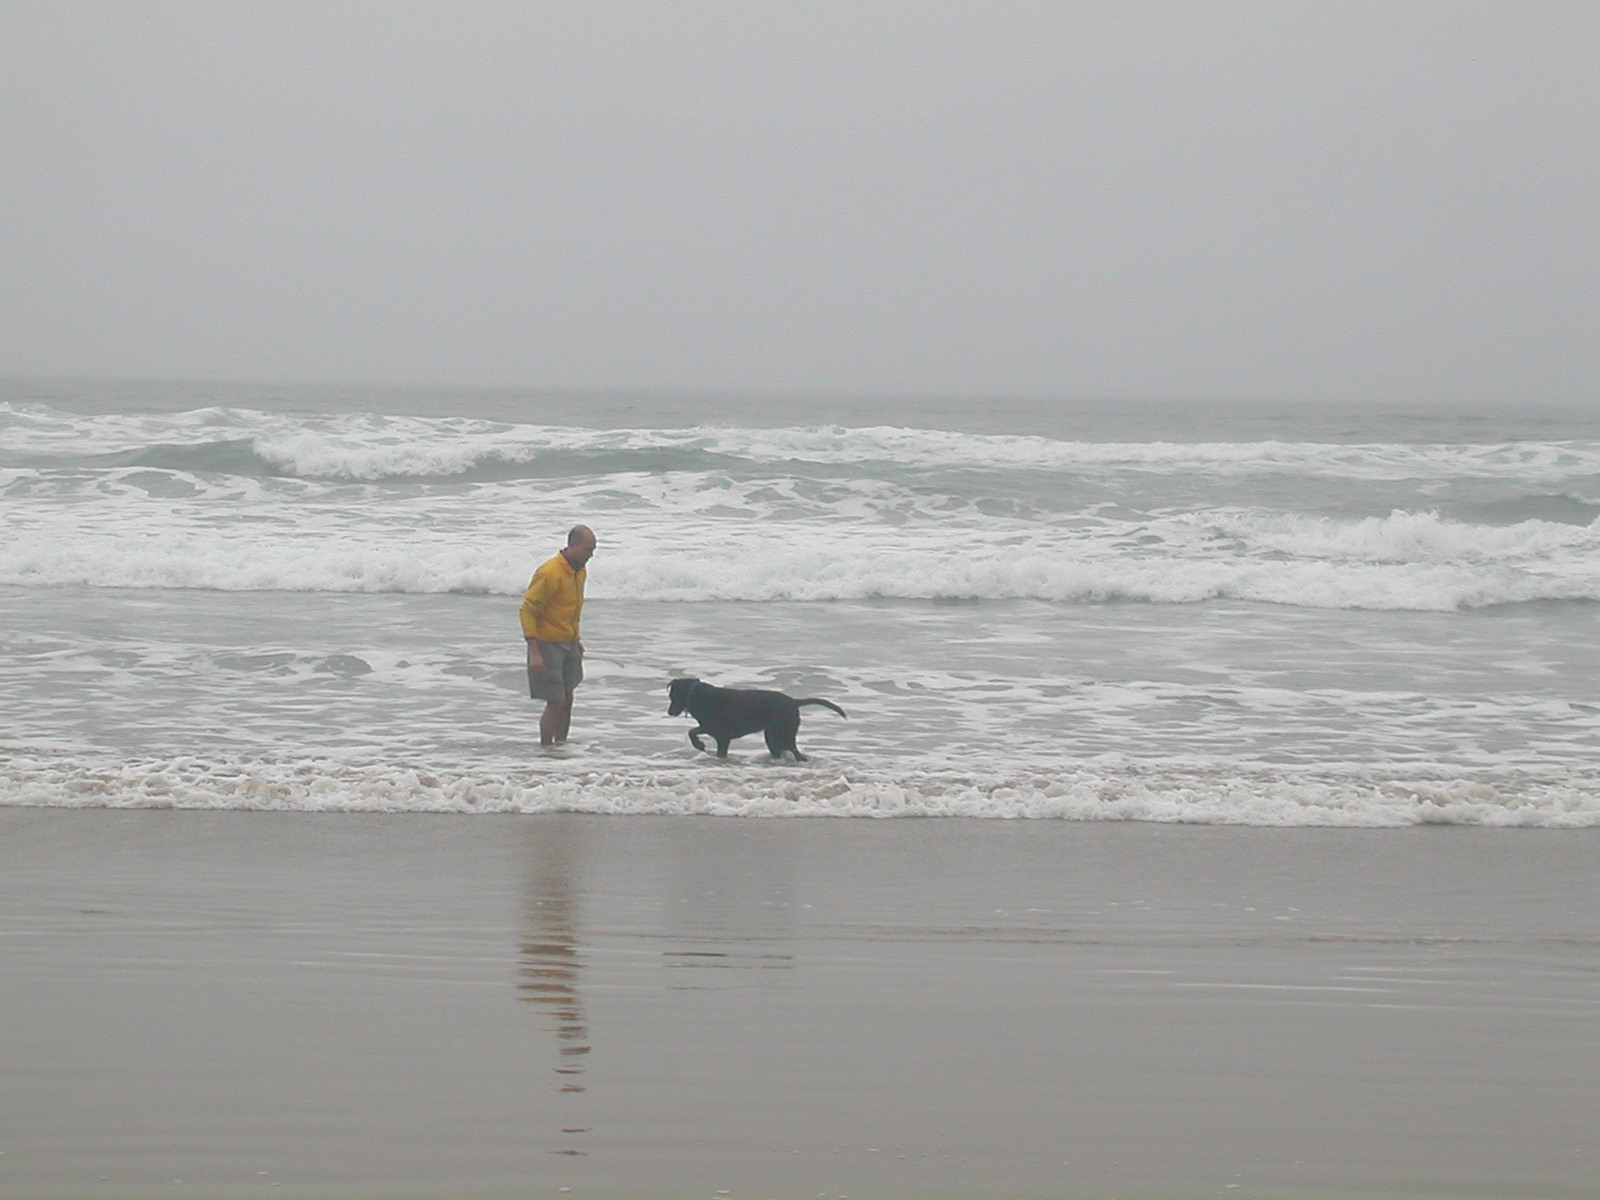 Kyle and Keiko on the beach